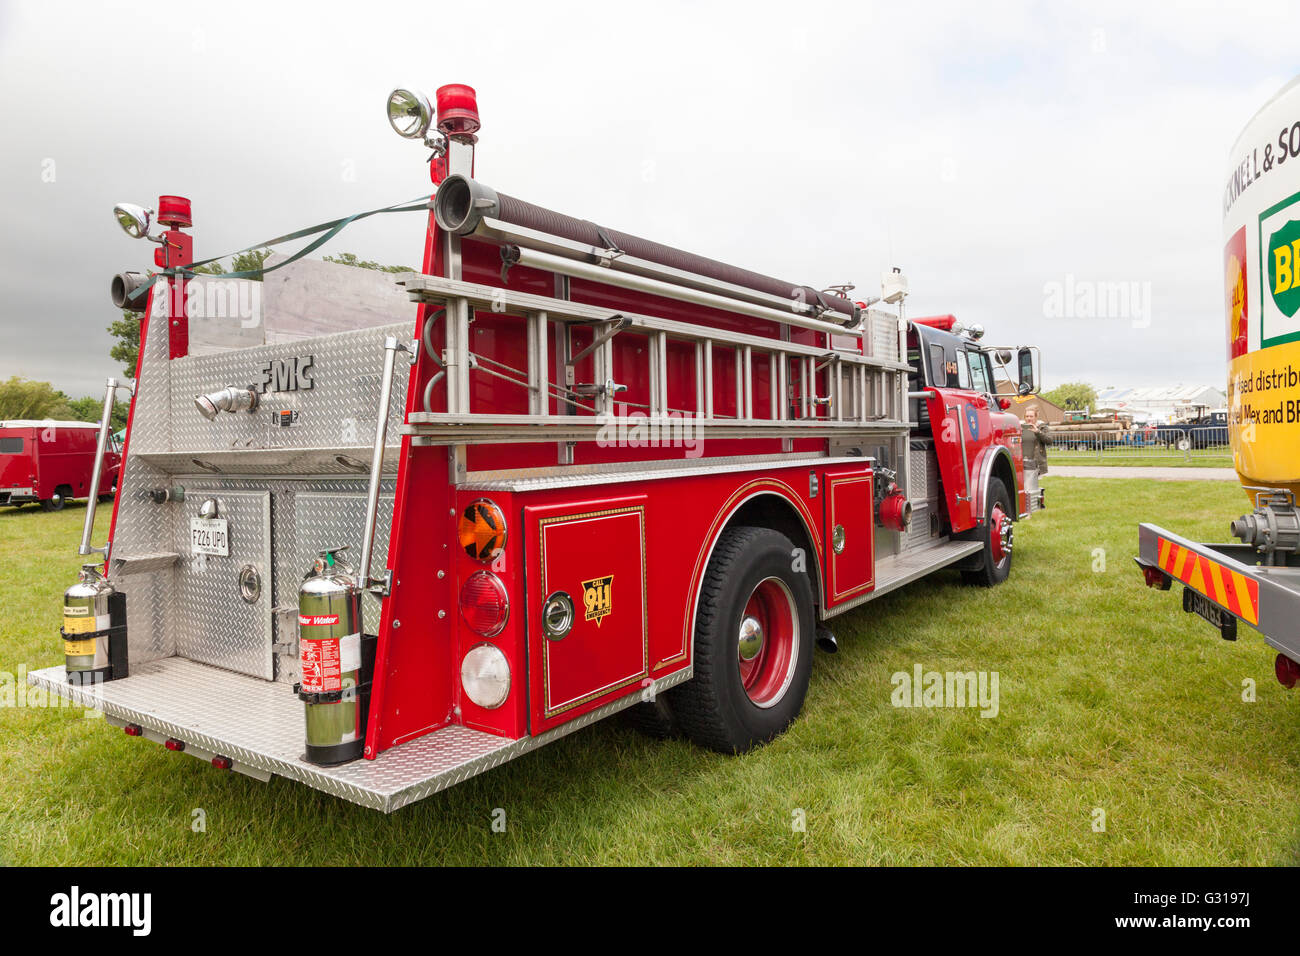 Vintage Fire Engines shown at the Royal Bath & West Show, Shepton Mallet, Somerset. - Stock Image